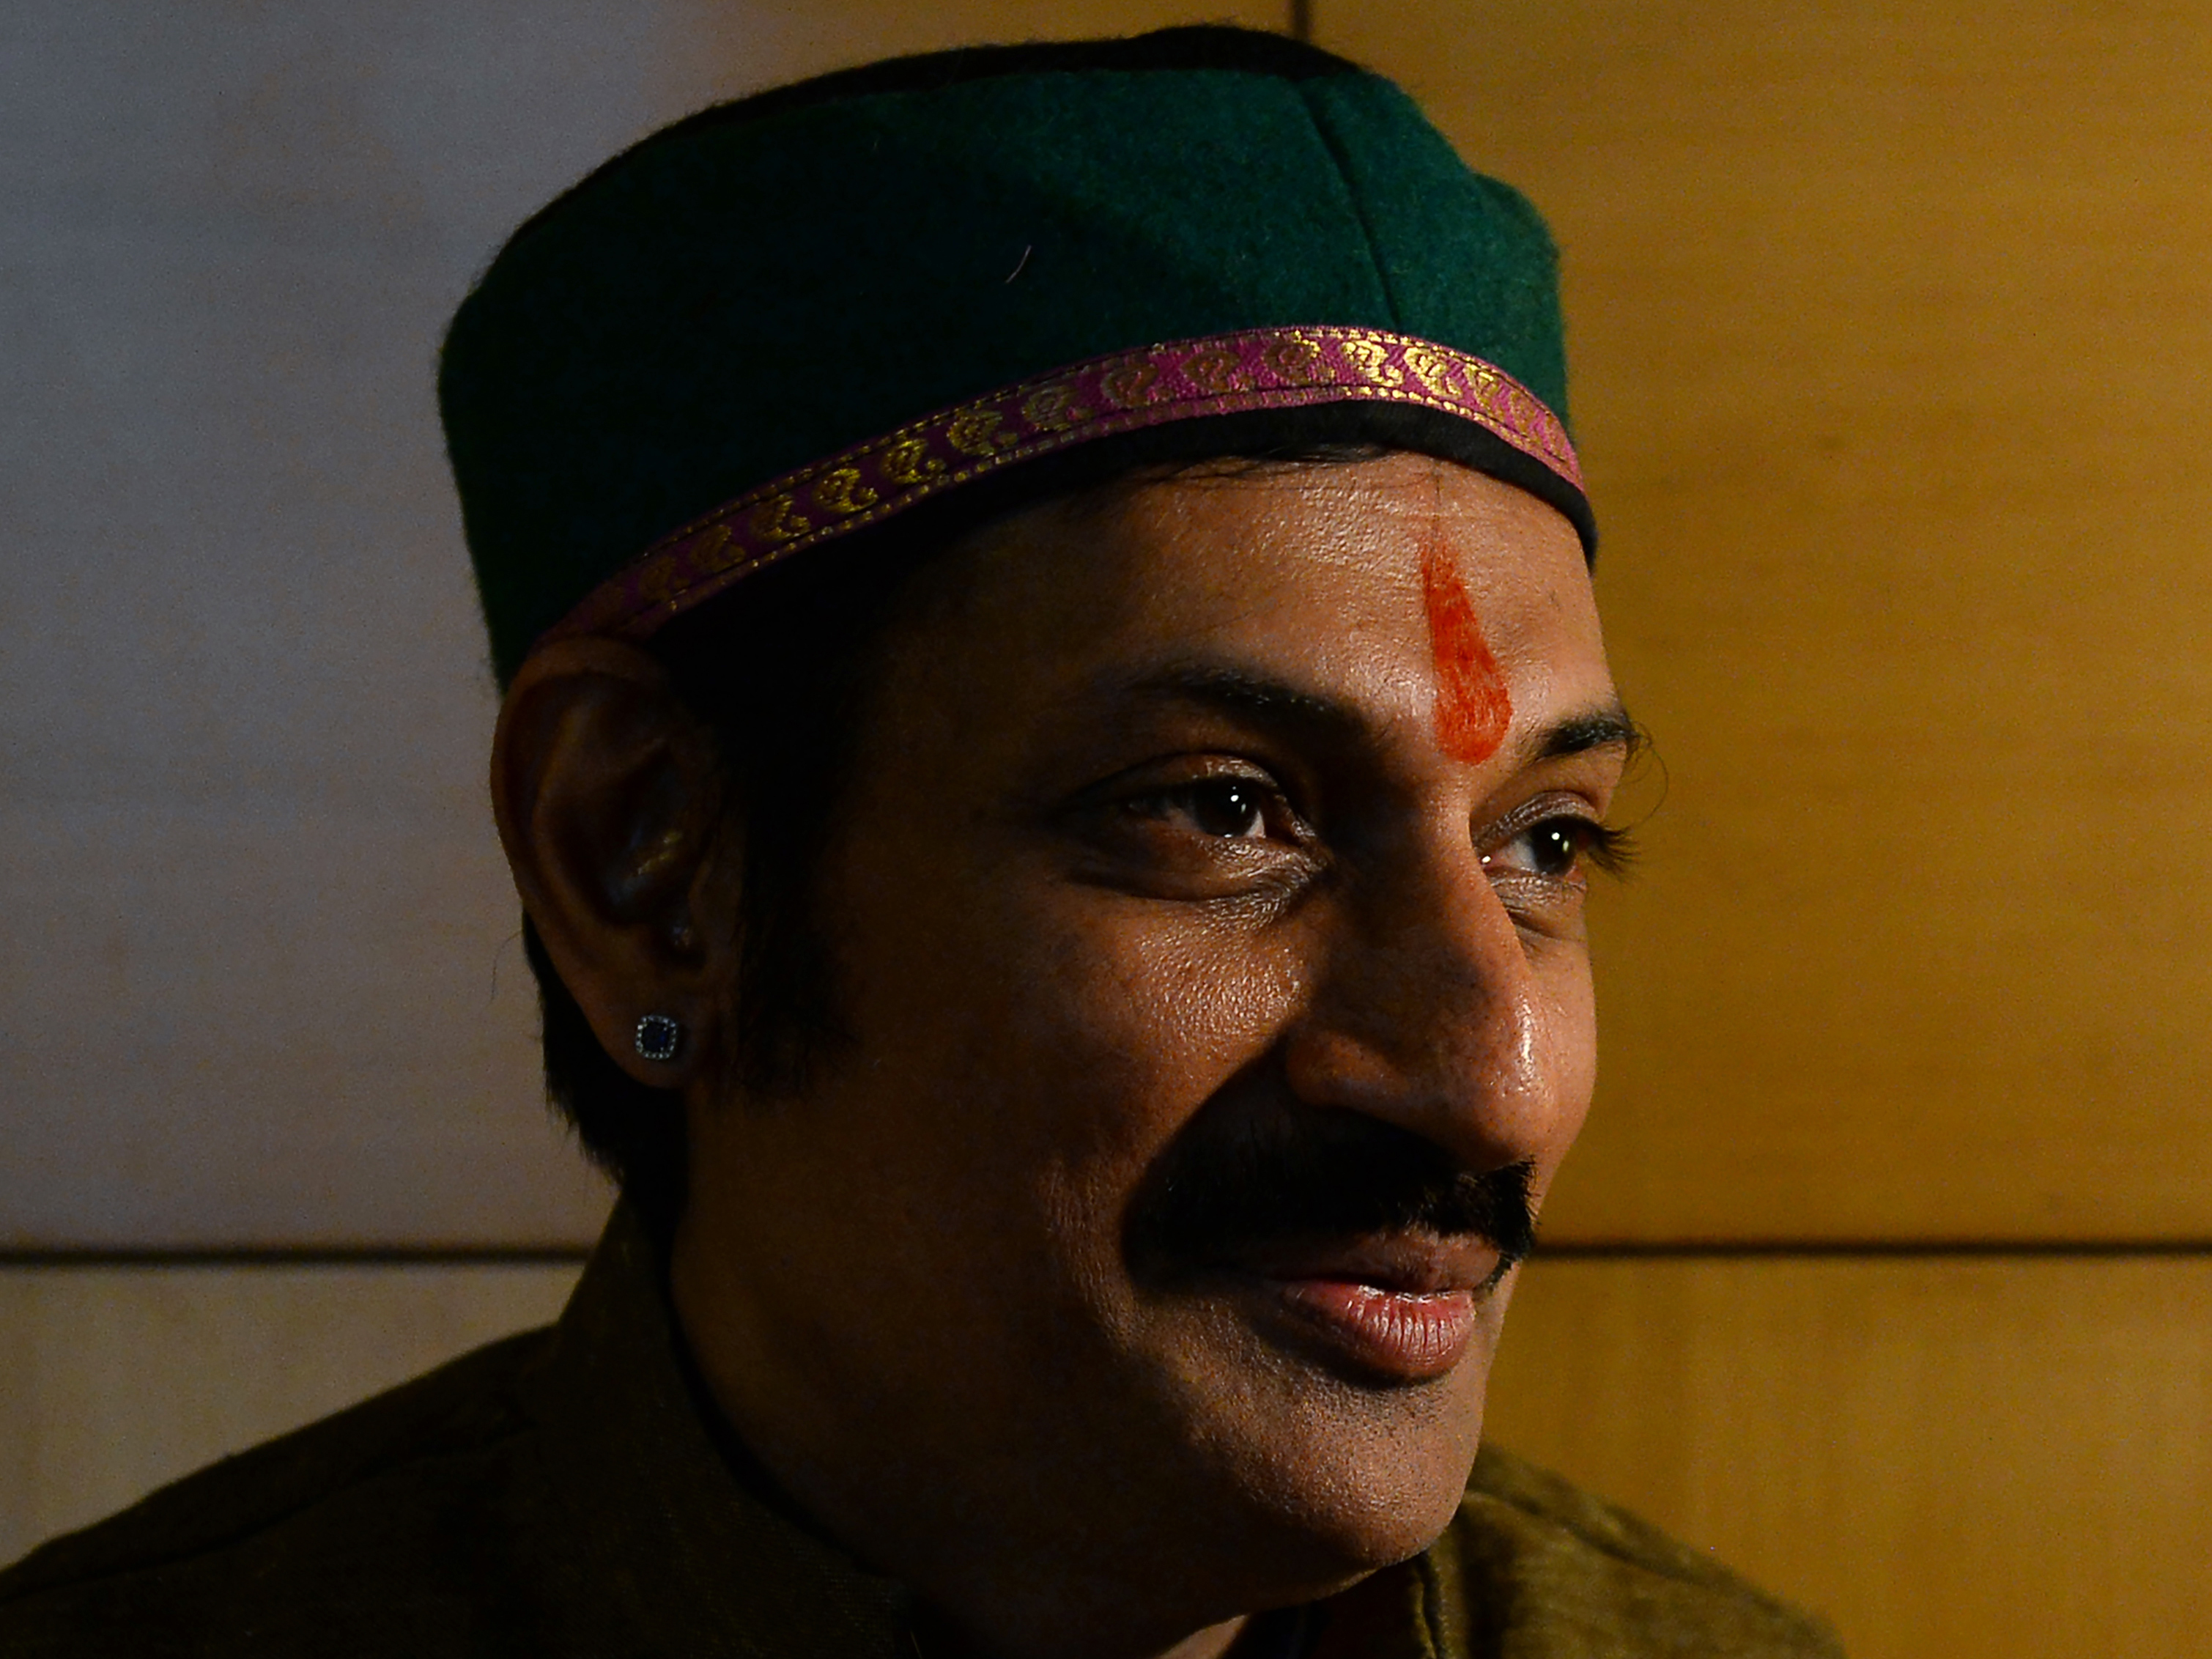 Gay Indian prince provides shelter to LGBT community in his palace